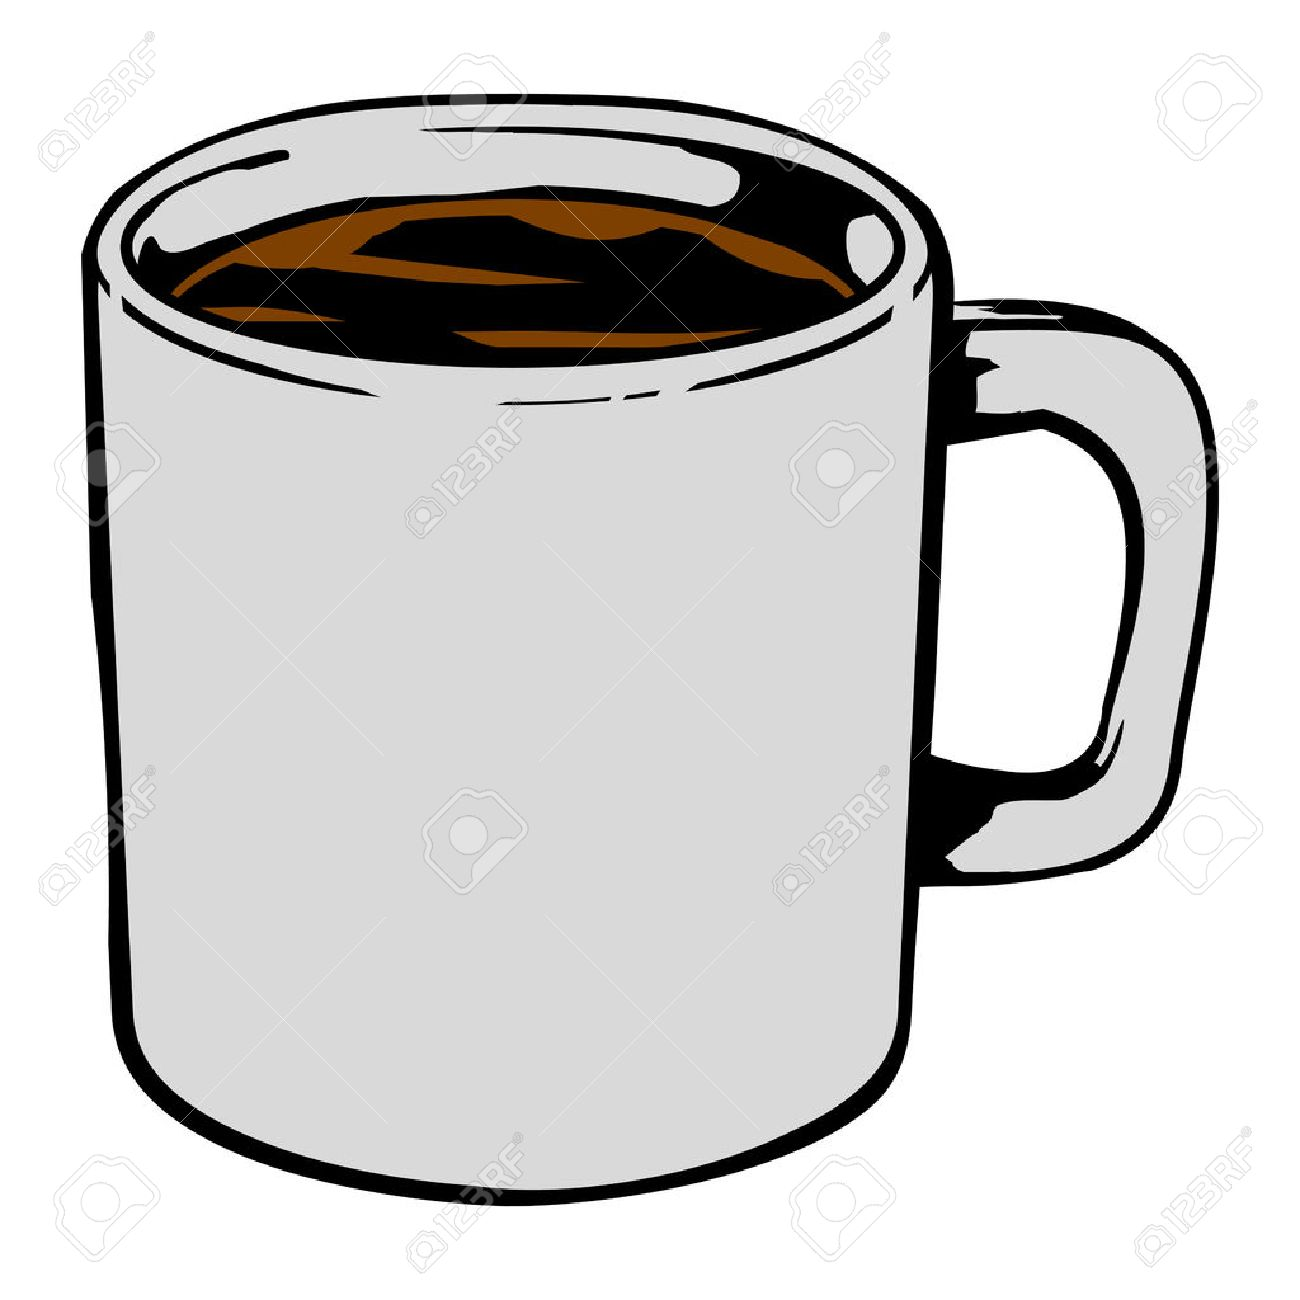 coffee mug vector icon royalty free cliparts vectors and stock